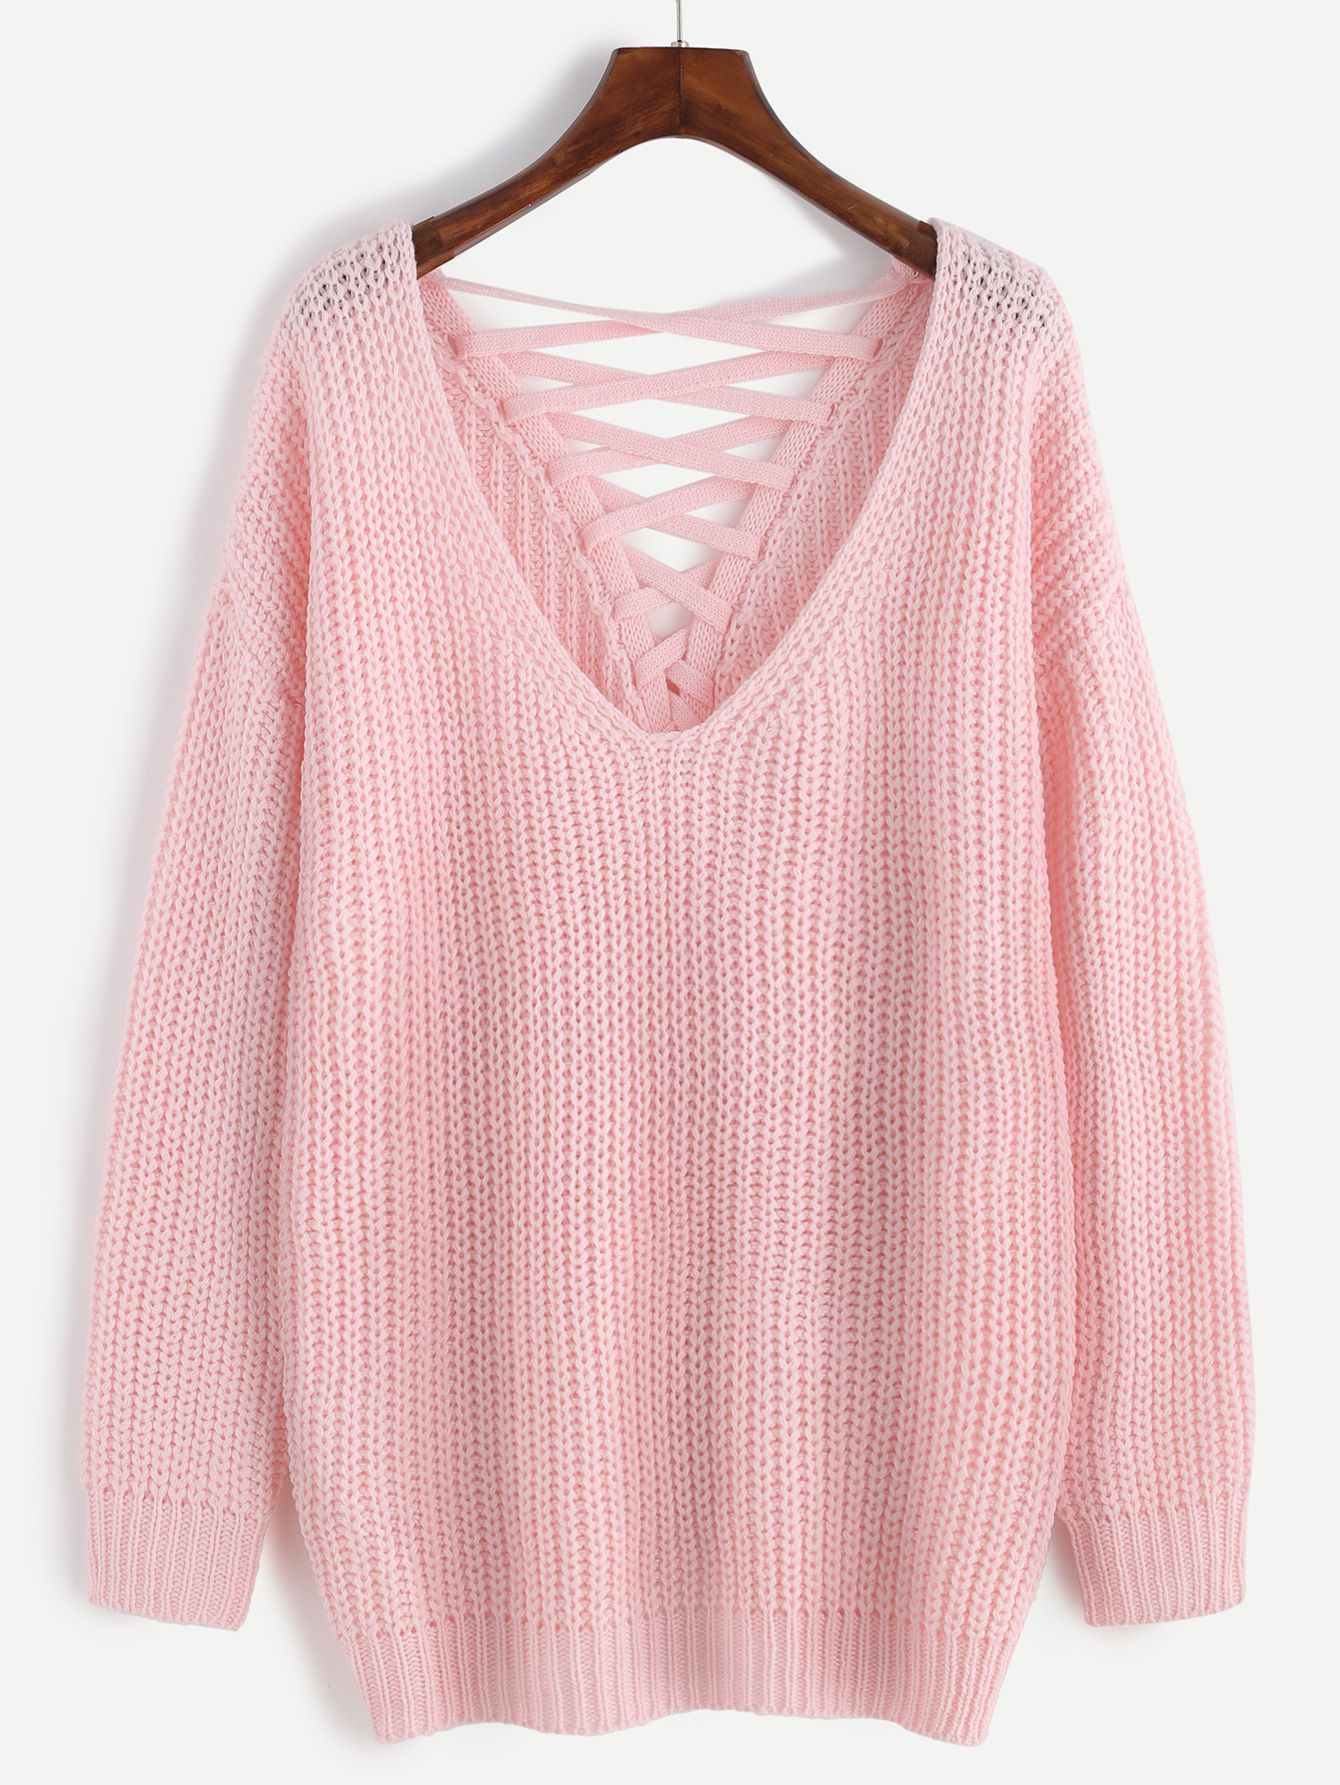 Pink Deep V Neck Lace Up Back Drop Shoulder Sweater | Shops, Lace ...